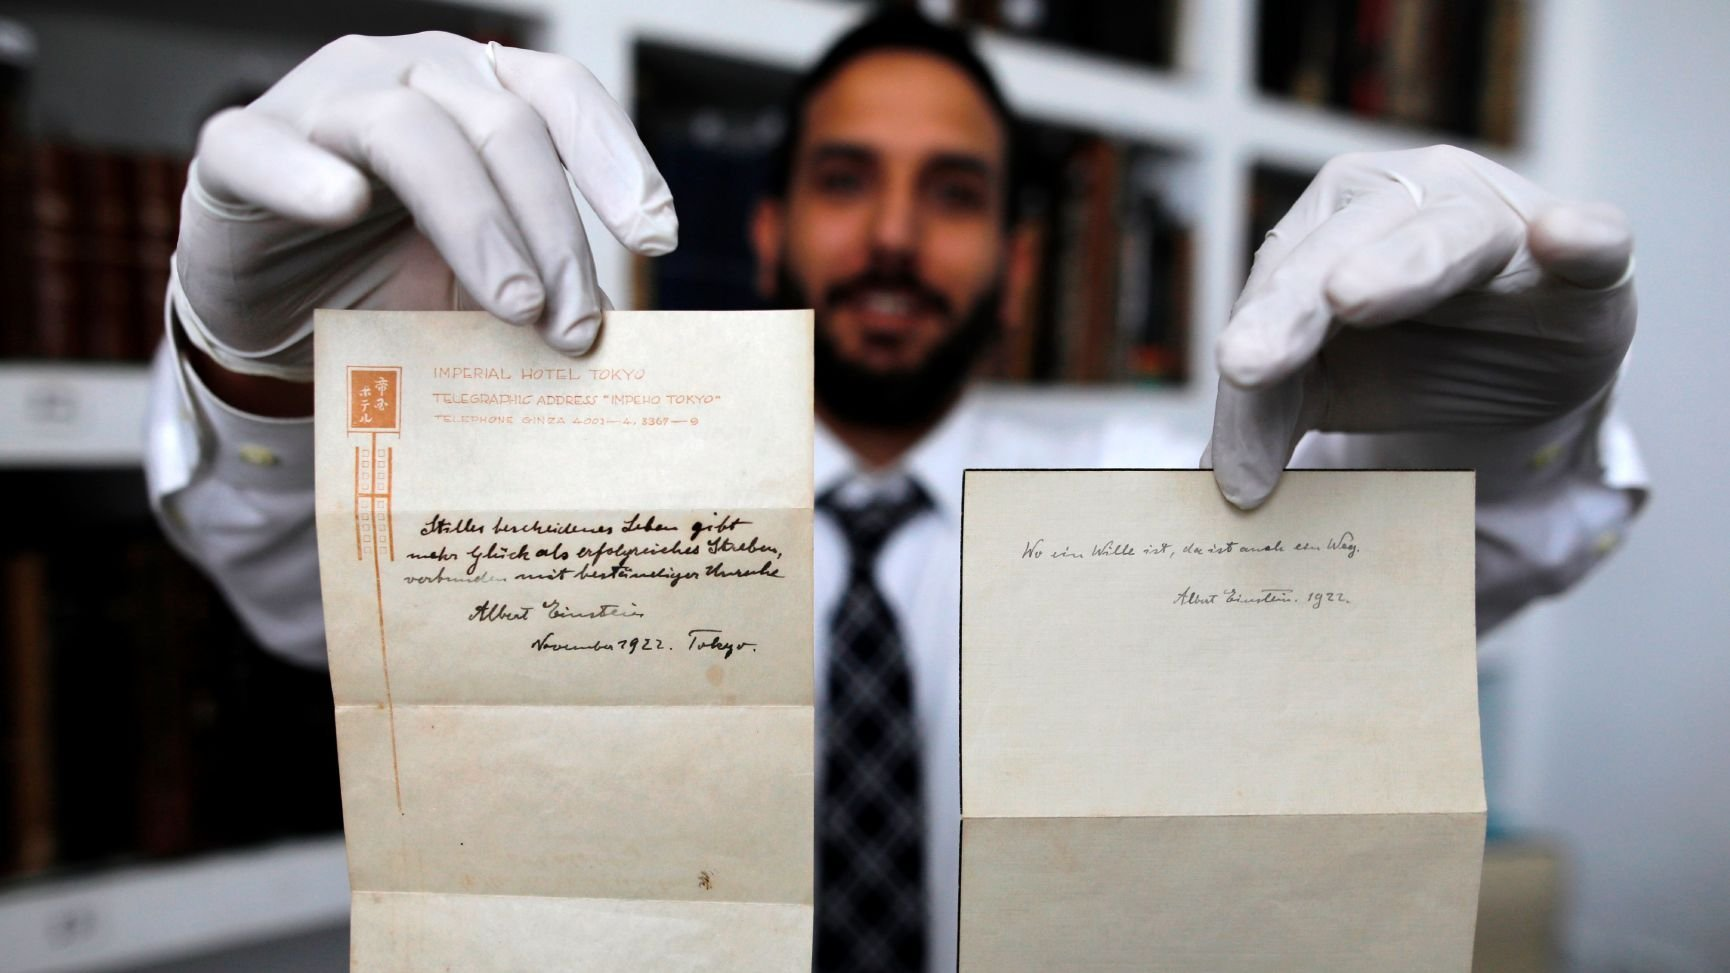 Two handwritten notes penned by Albert Einstein have been sold at auction for a combined $1.8 million. (Credit: Menahem Kahana/AFP/Getty Images)